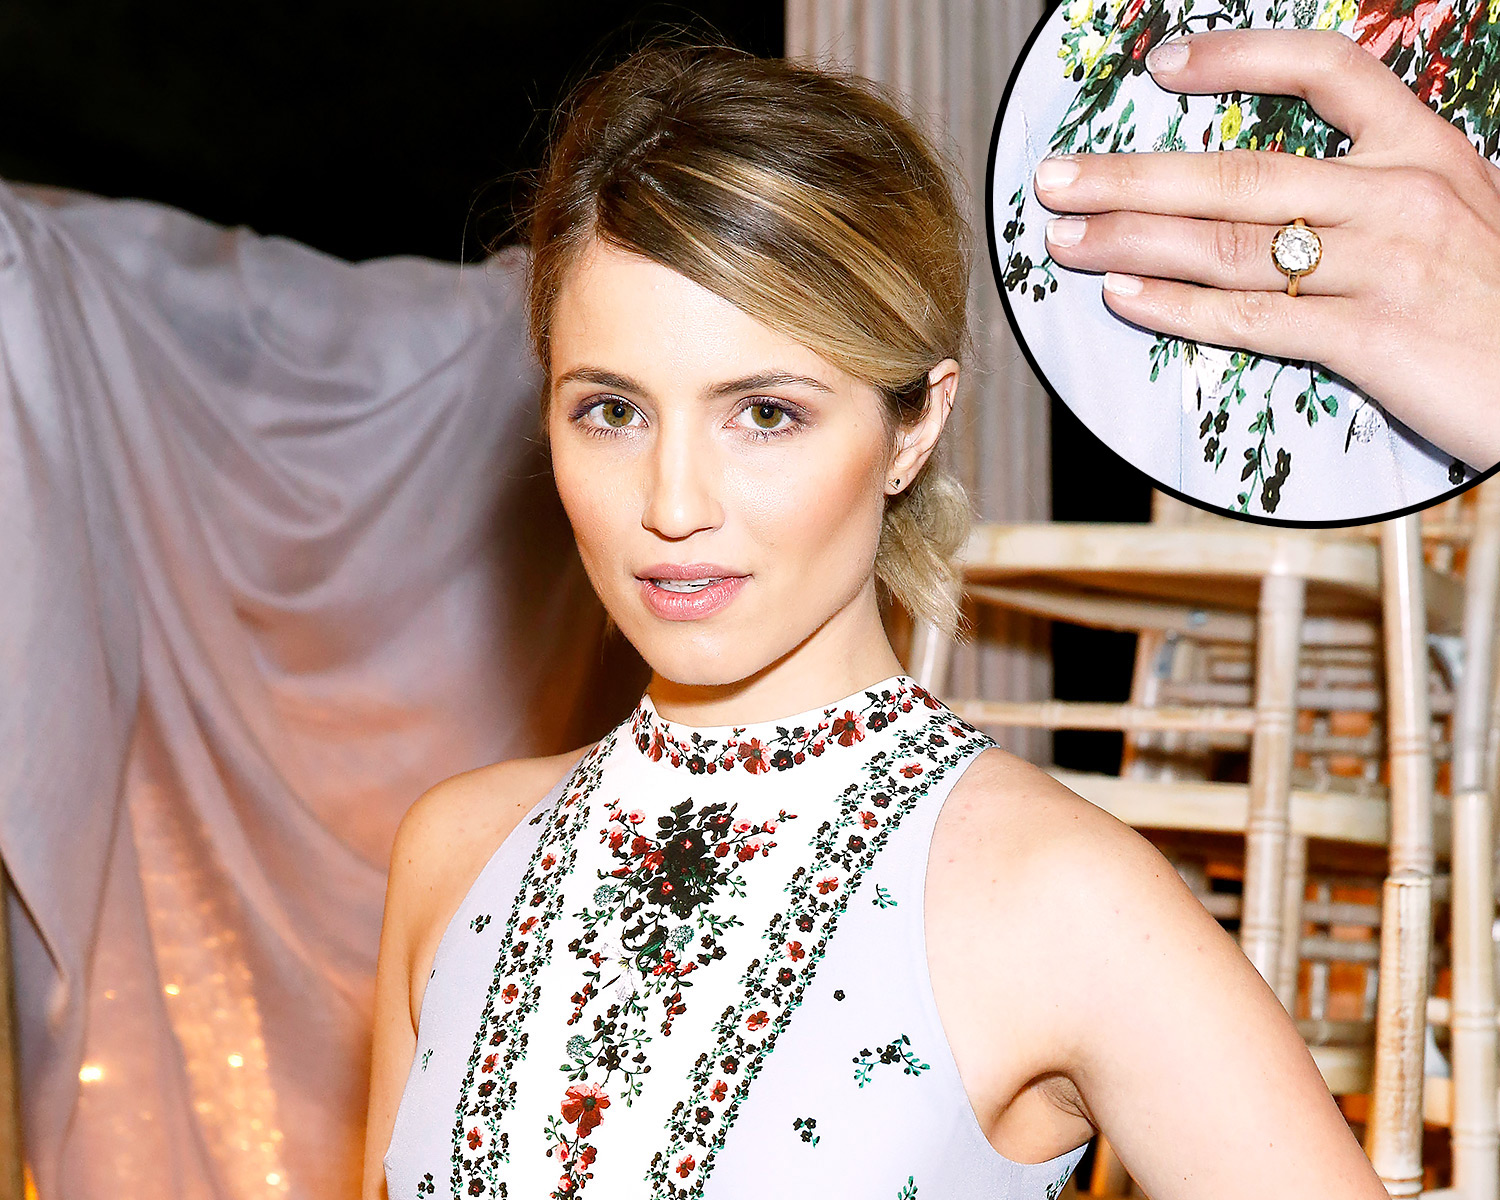 Glee's Dianna Agron Flashes Rumored Engagement Ring at London Fashion Week